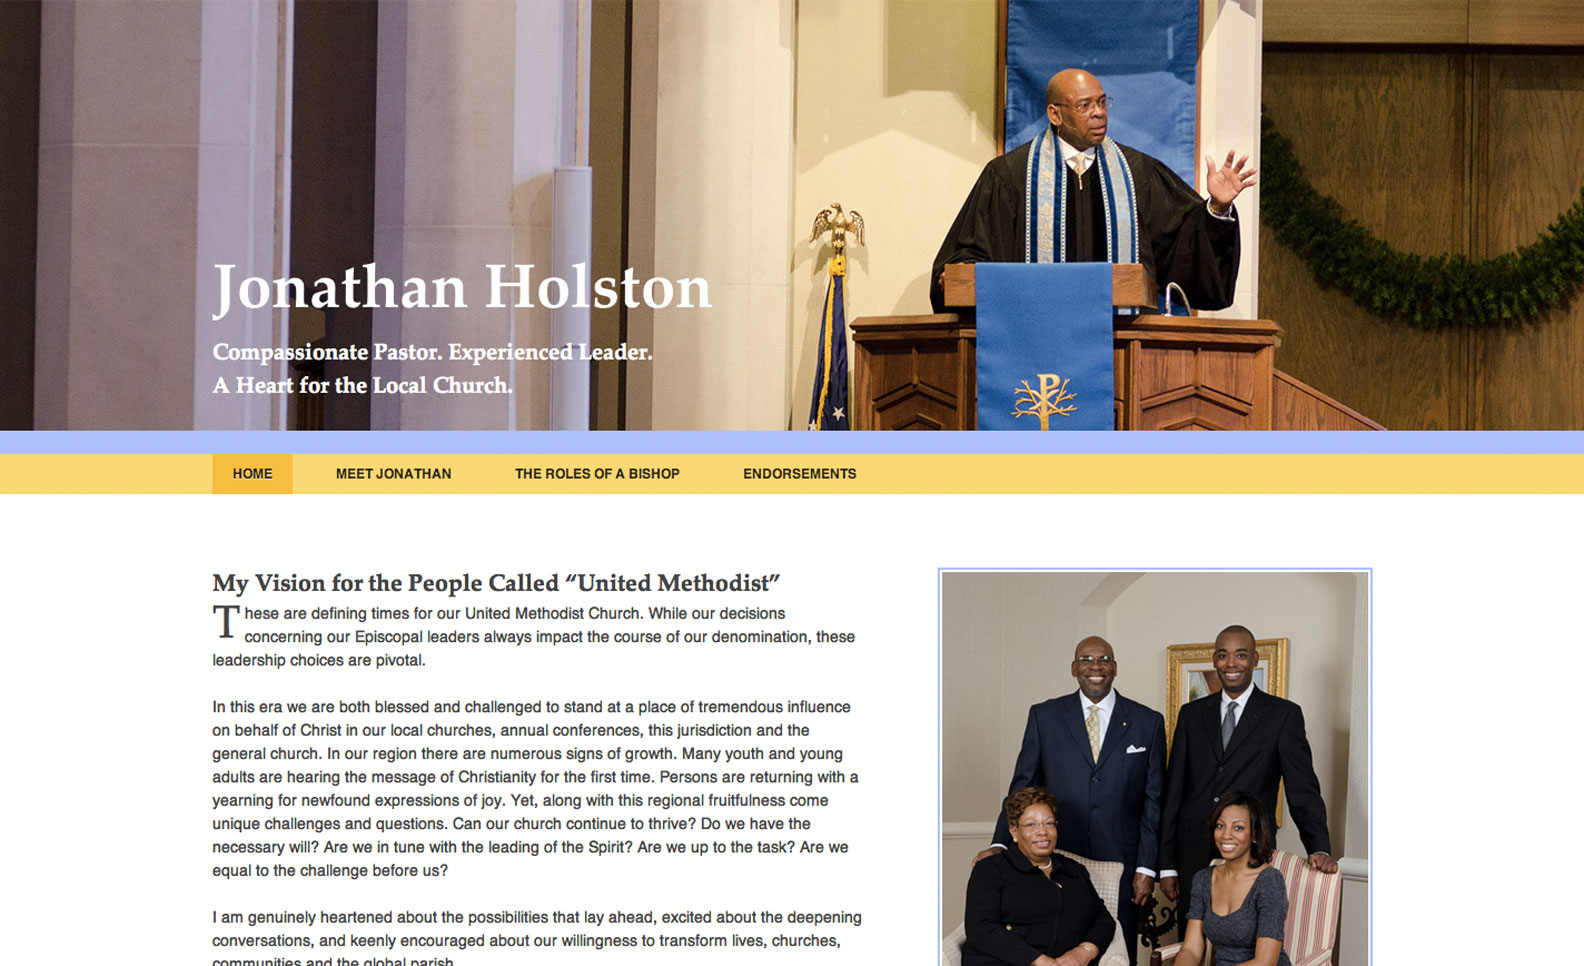 Screenshot of JonathanHolston.org